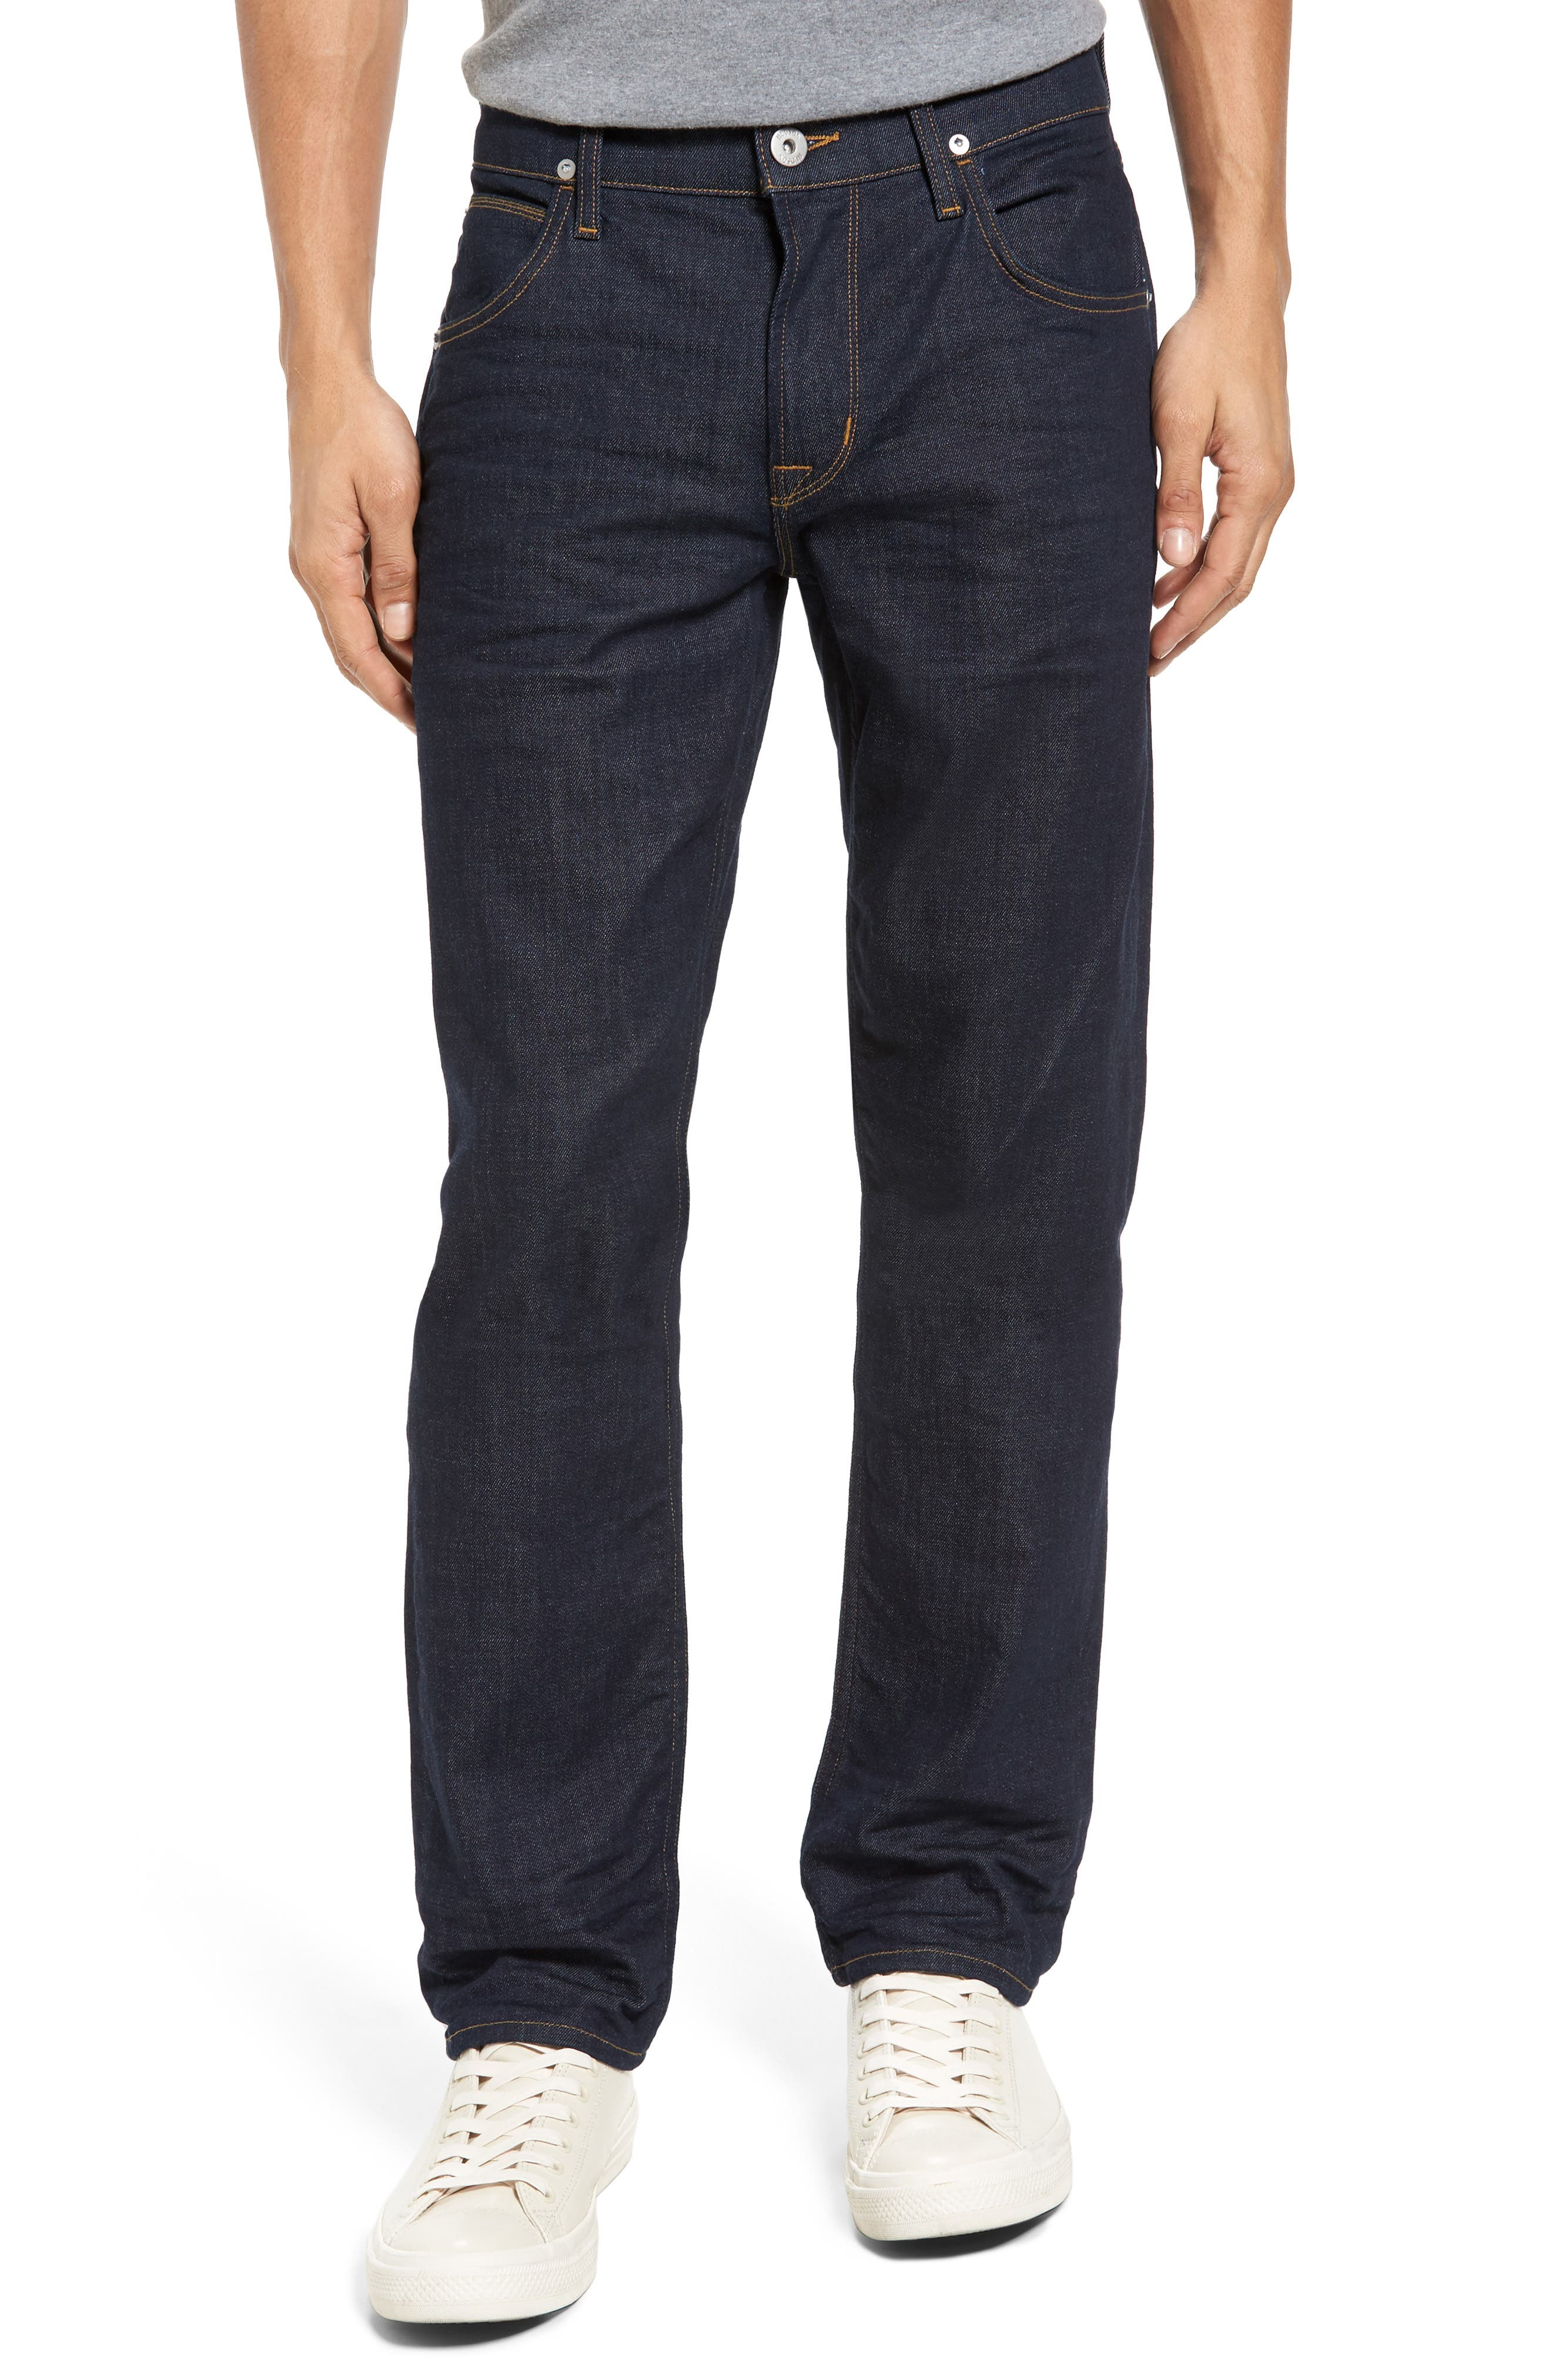 Blake Slim Fit Jeans,                             Main thumbnail 1, color,                             Anonymous